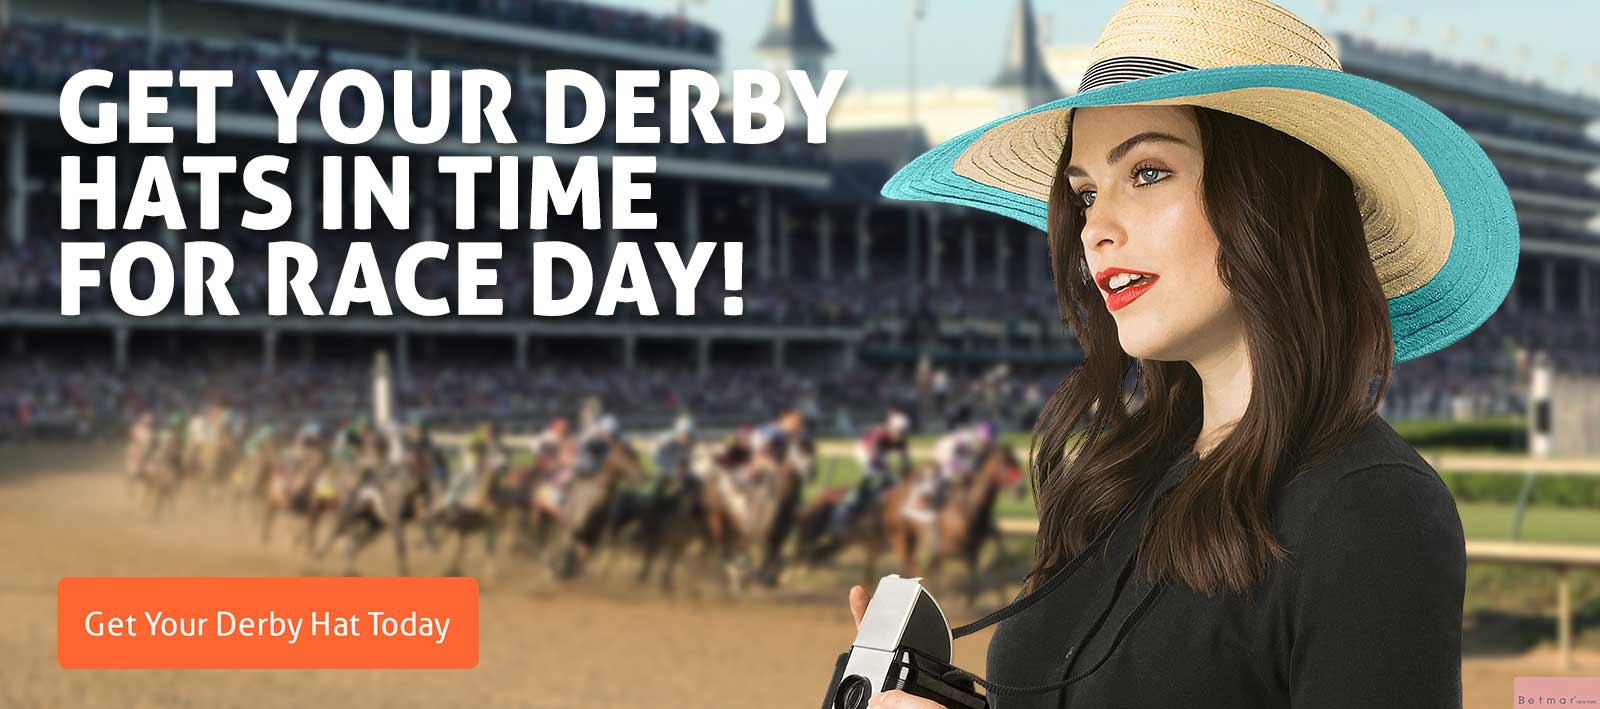 Get your derby hats in time for race day!